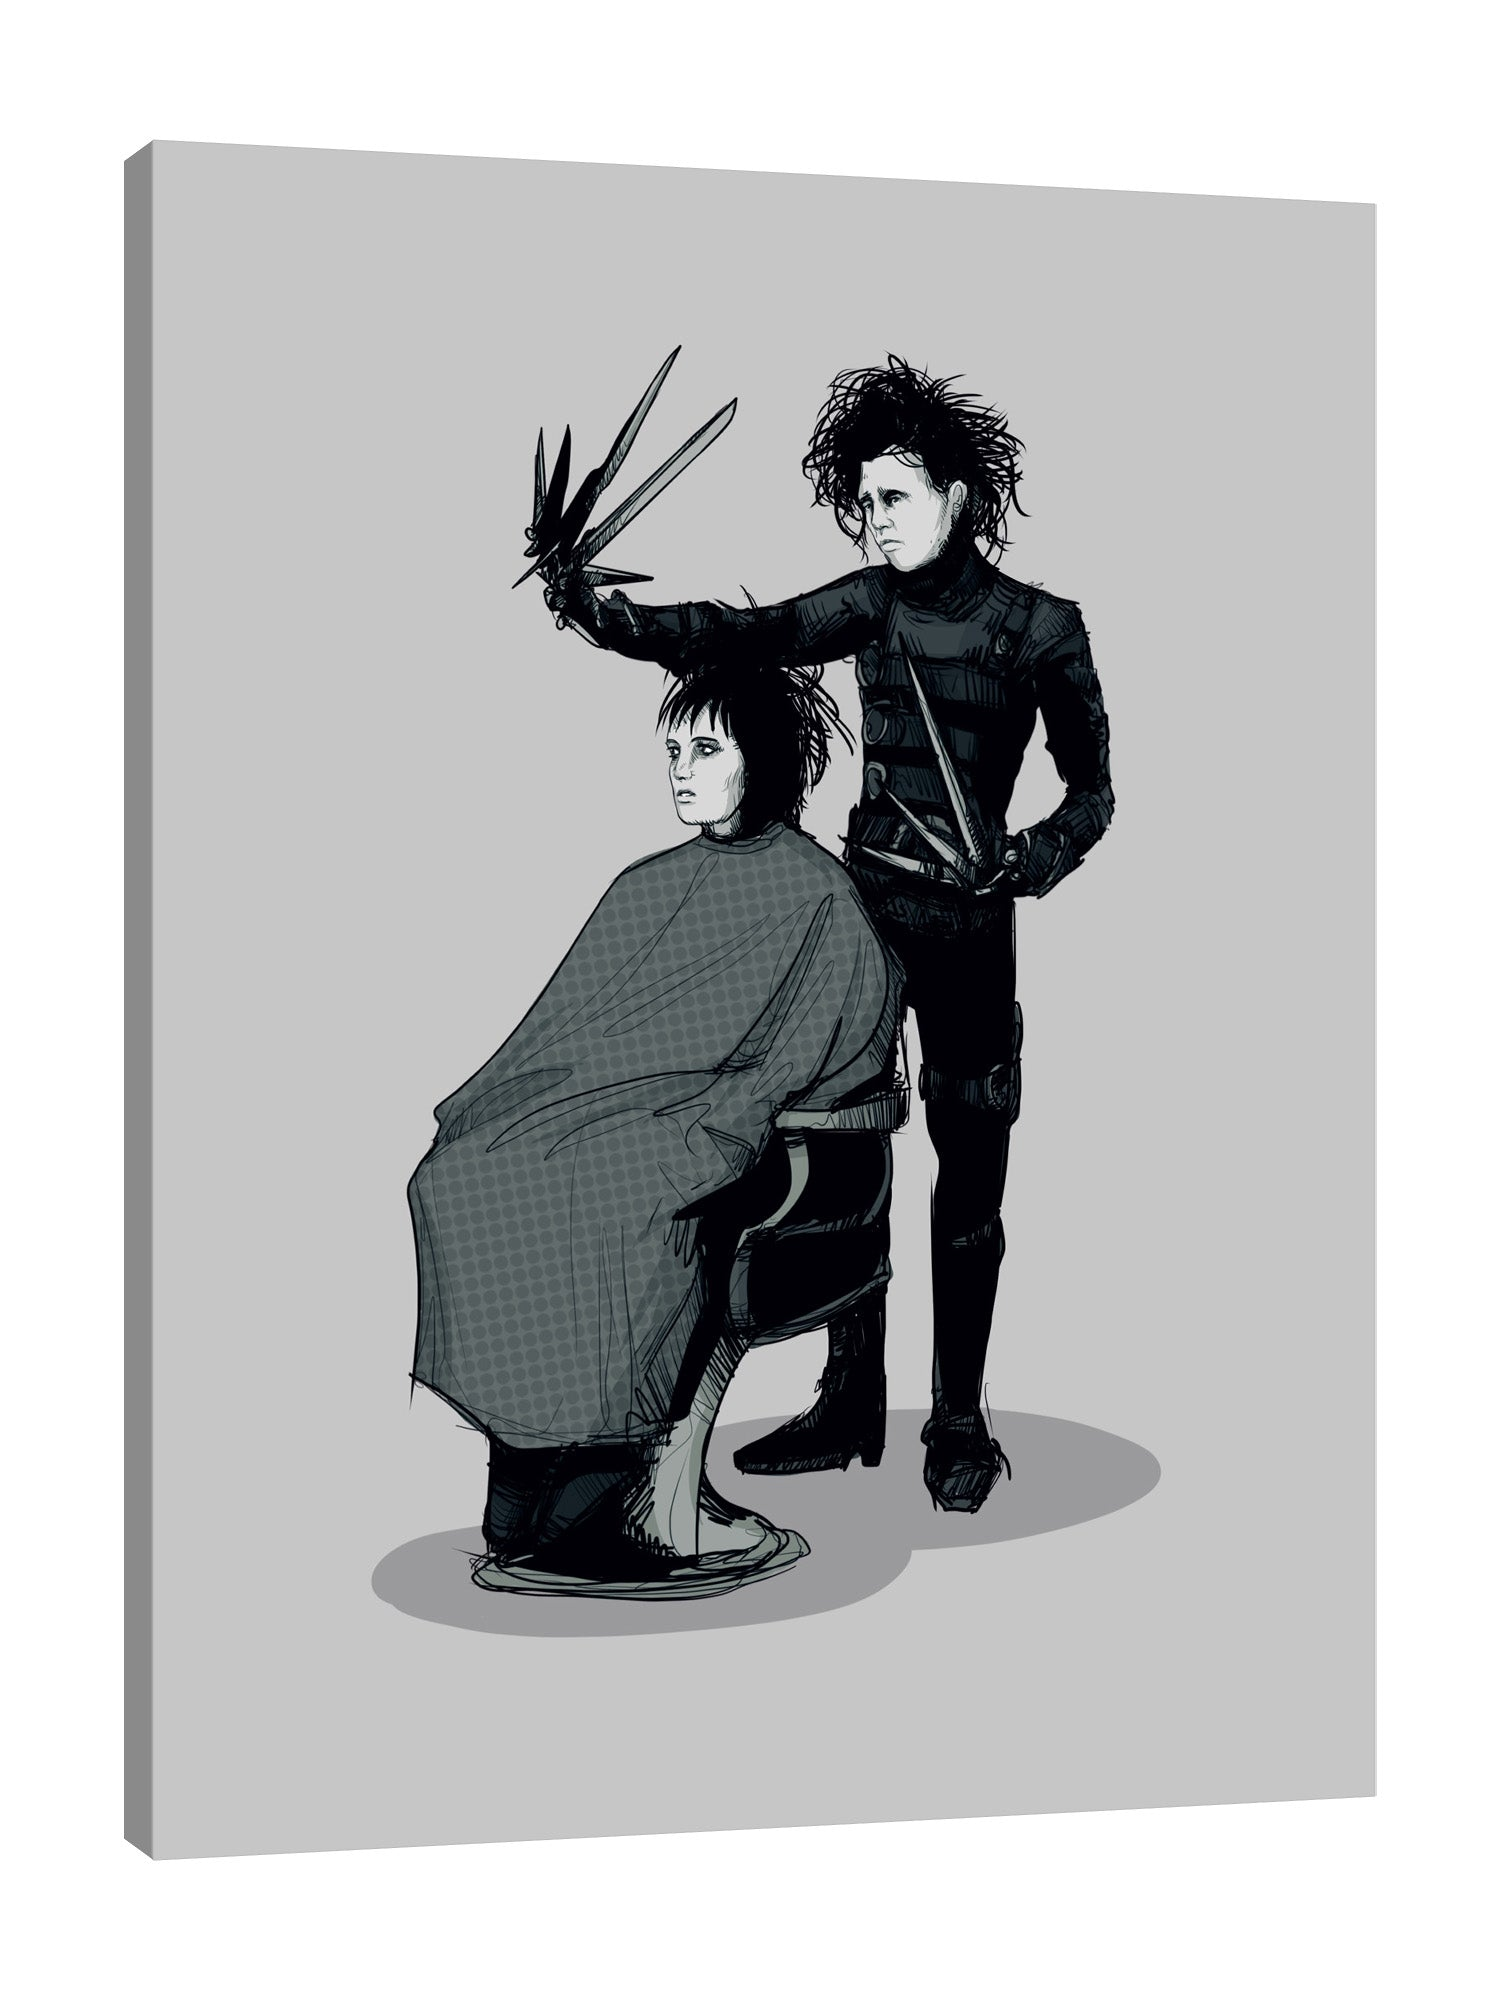 Ludwig-Van-Bacon,Vertical,3X4,Modern & Contemporary,Entertainment,People,edward,edward scissorhand,scissorhands,scissors,scissor,black,emo,haircut,haircuts,cuts,hair,salon,shadow,Red,Black,Baby Blue,Lime Green,Sky Blue,Gray